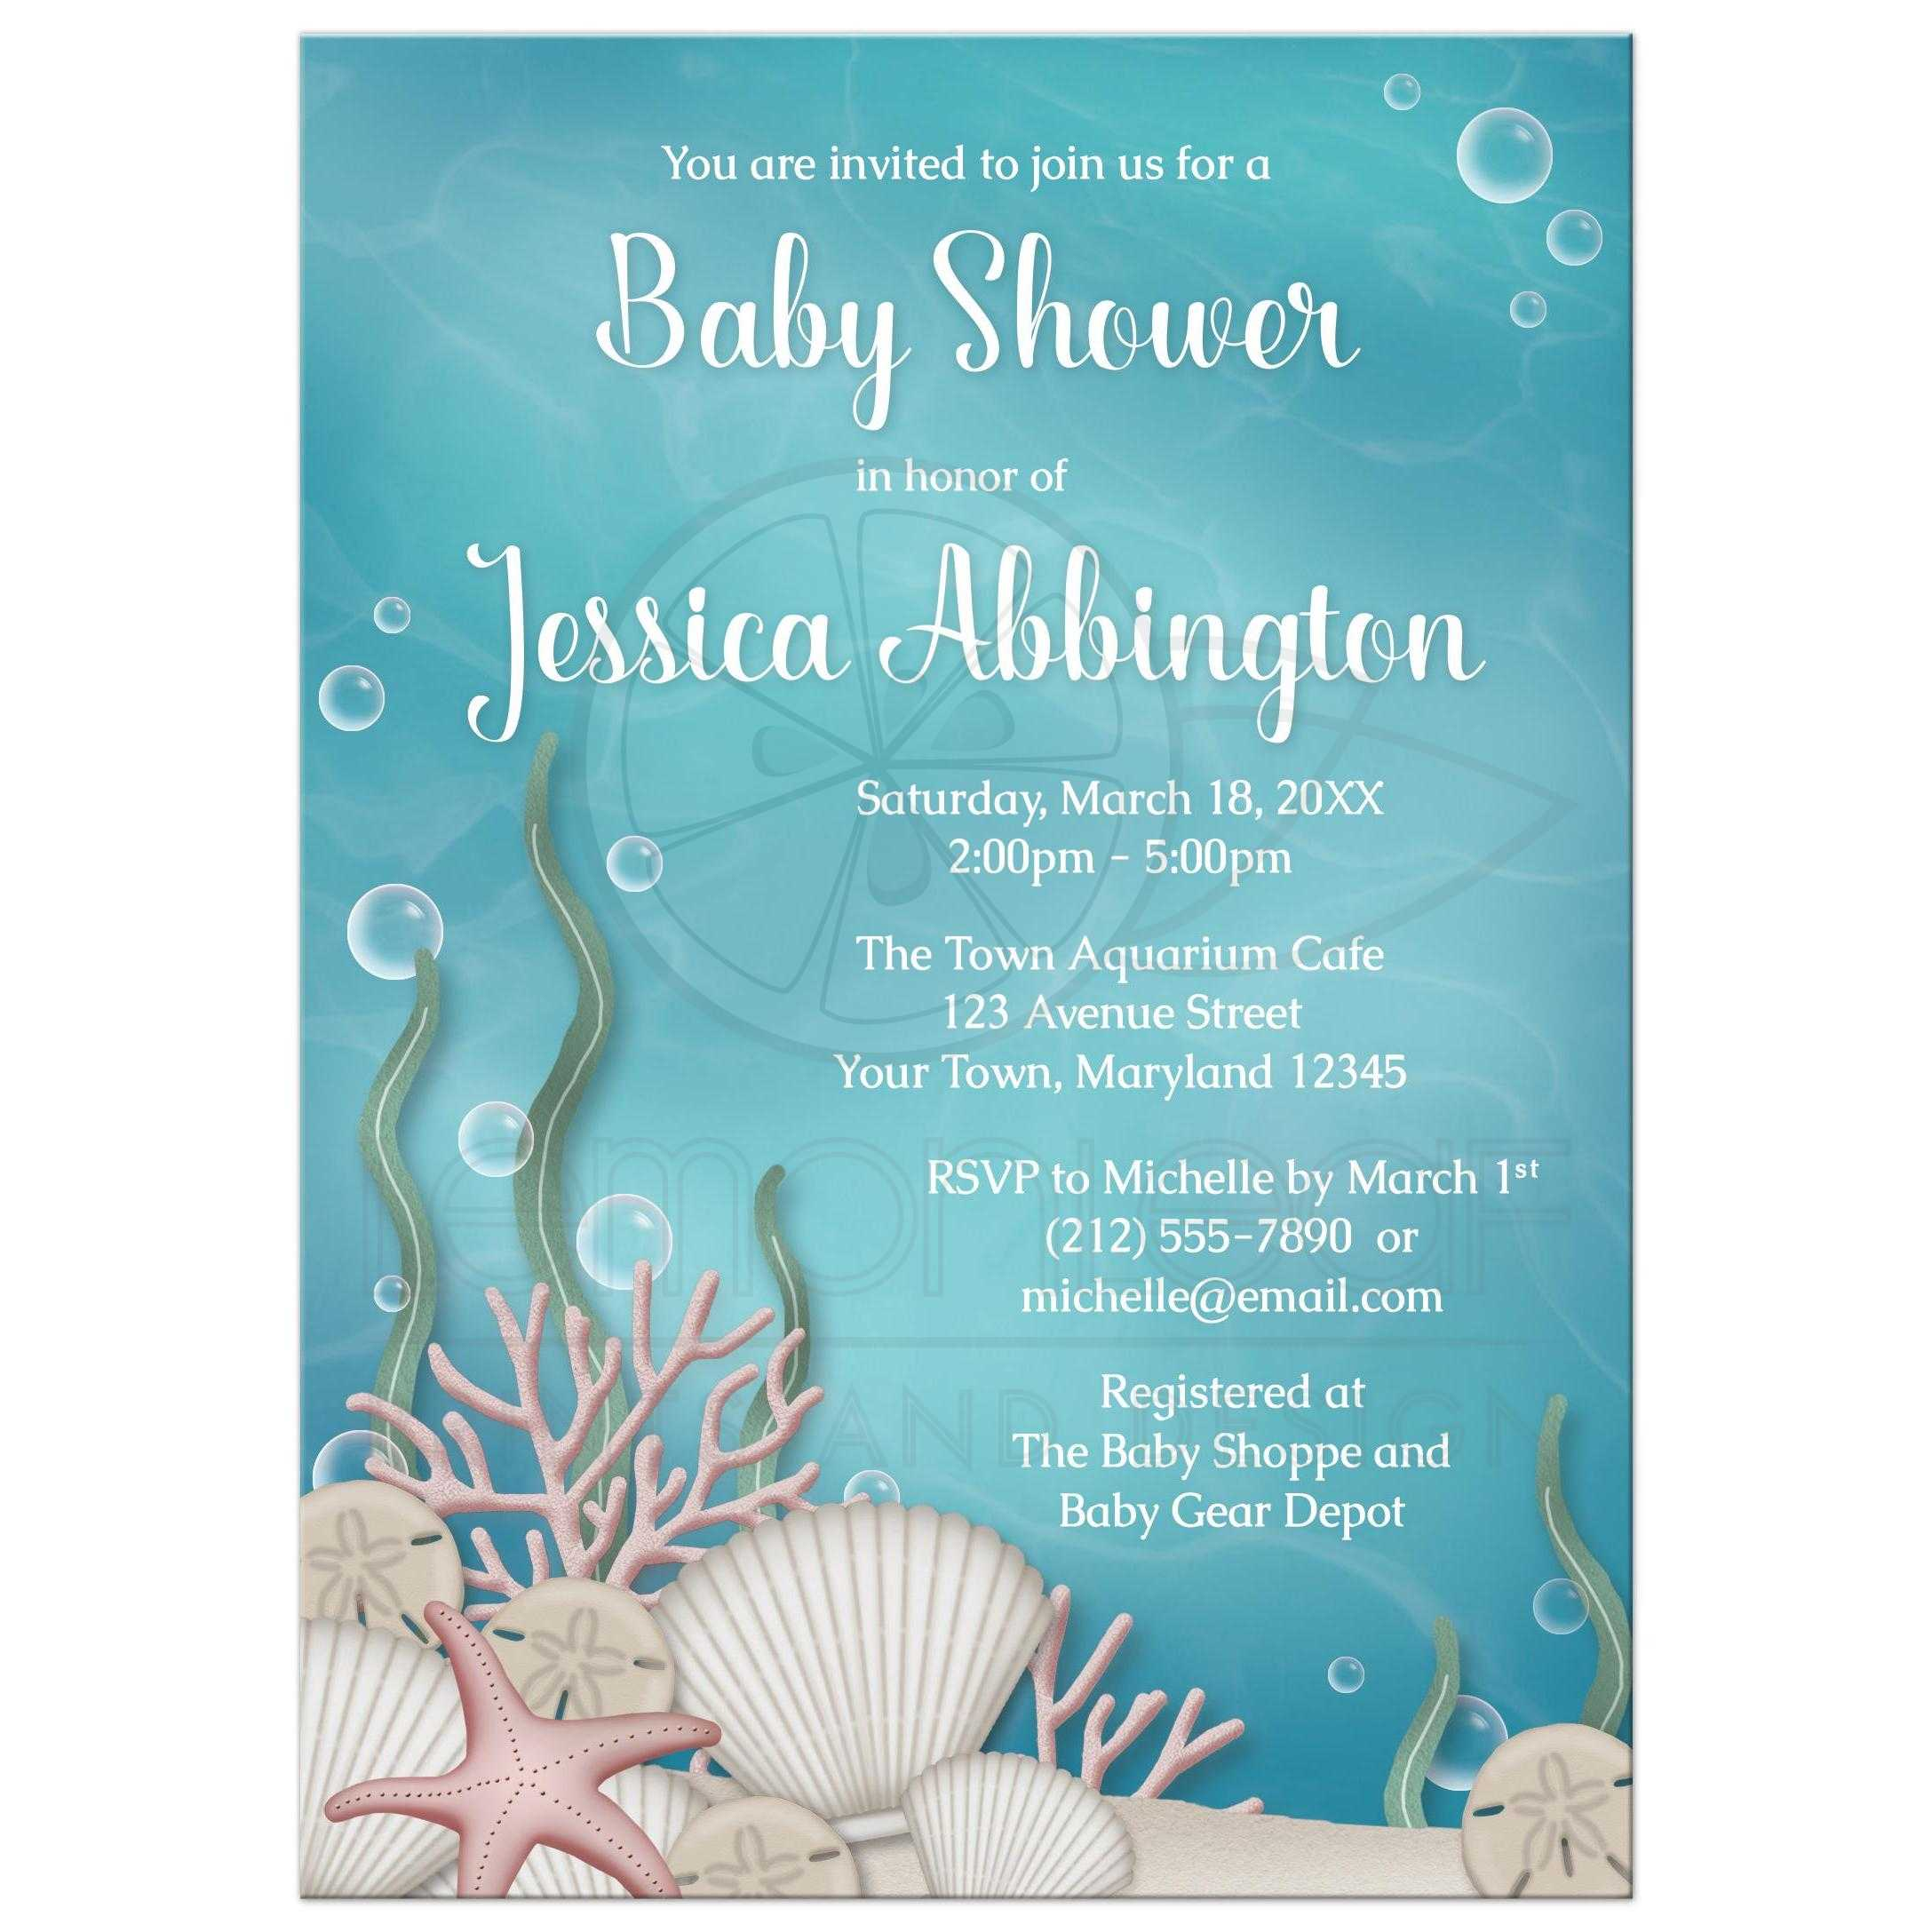 Baby shower invitations whimsical under the sea filmwisefo